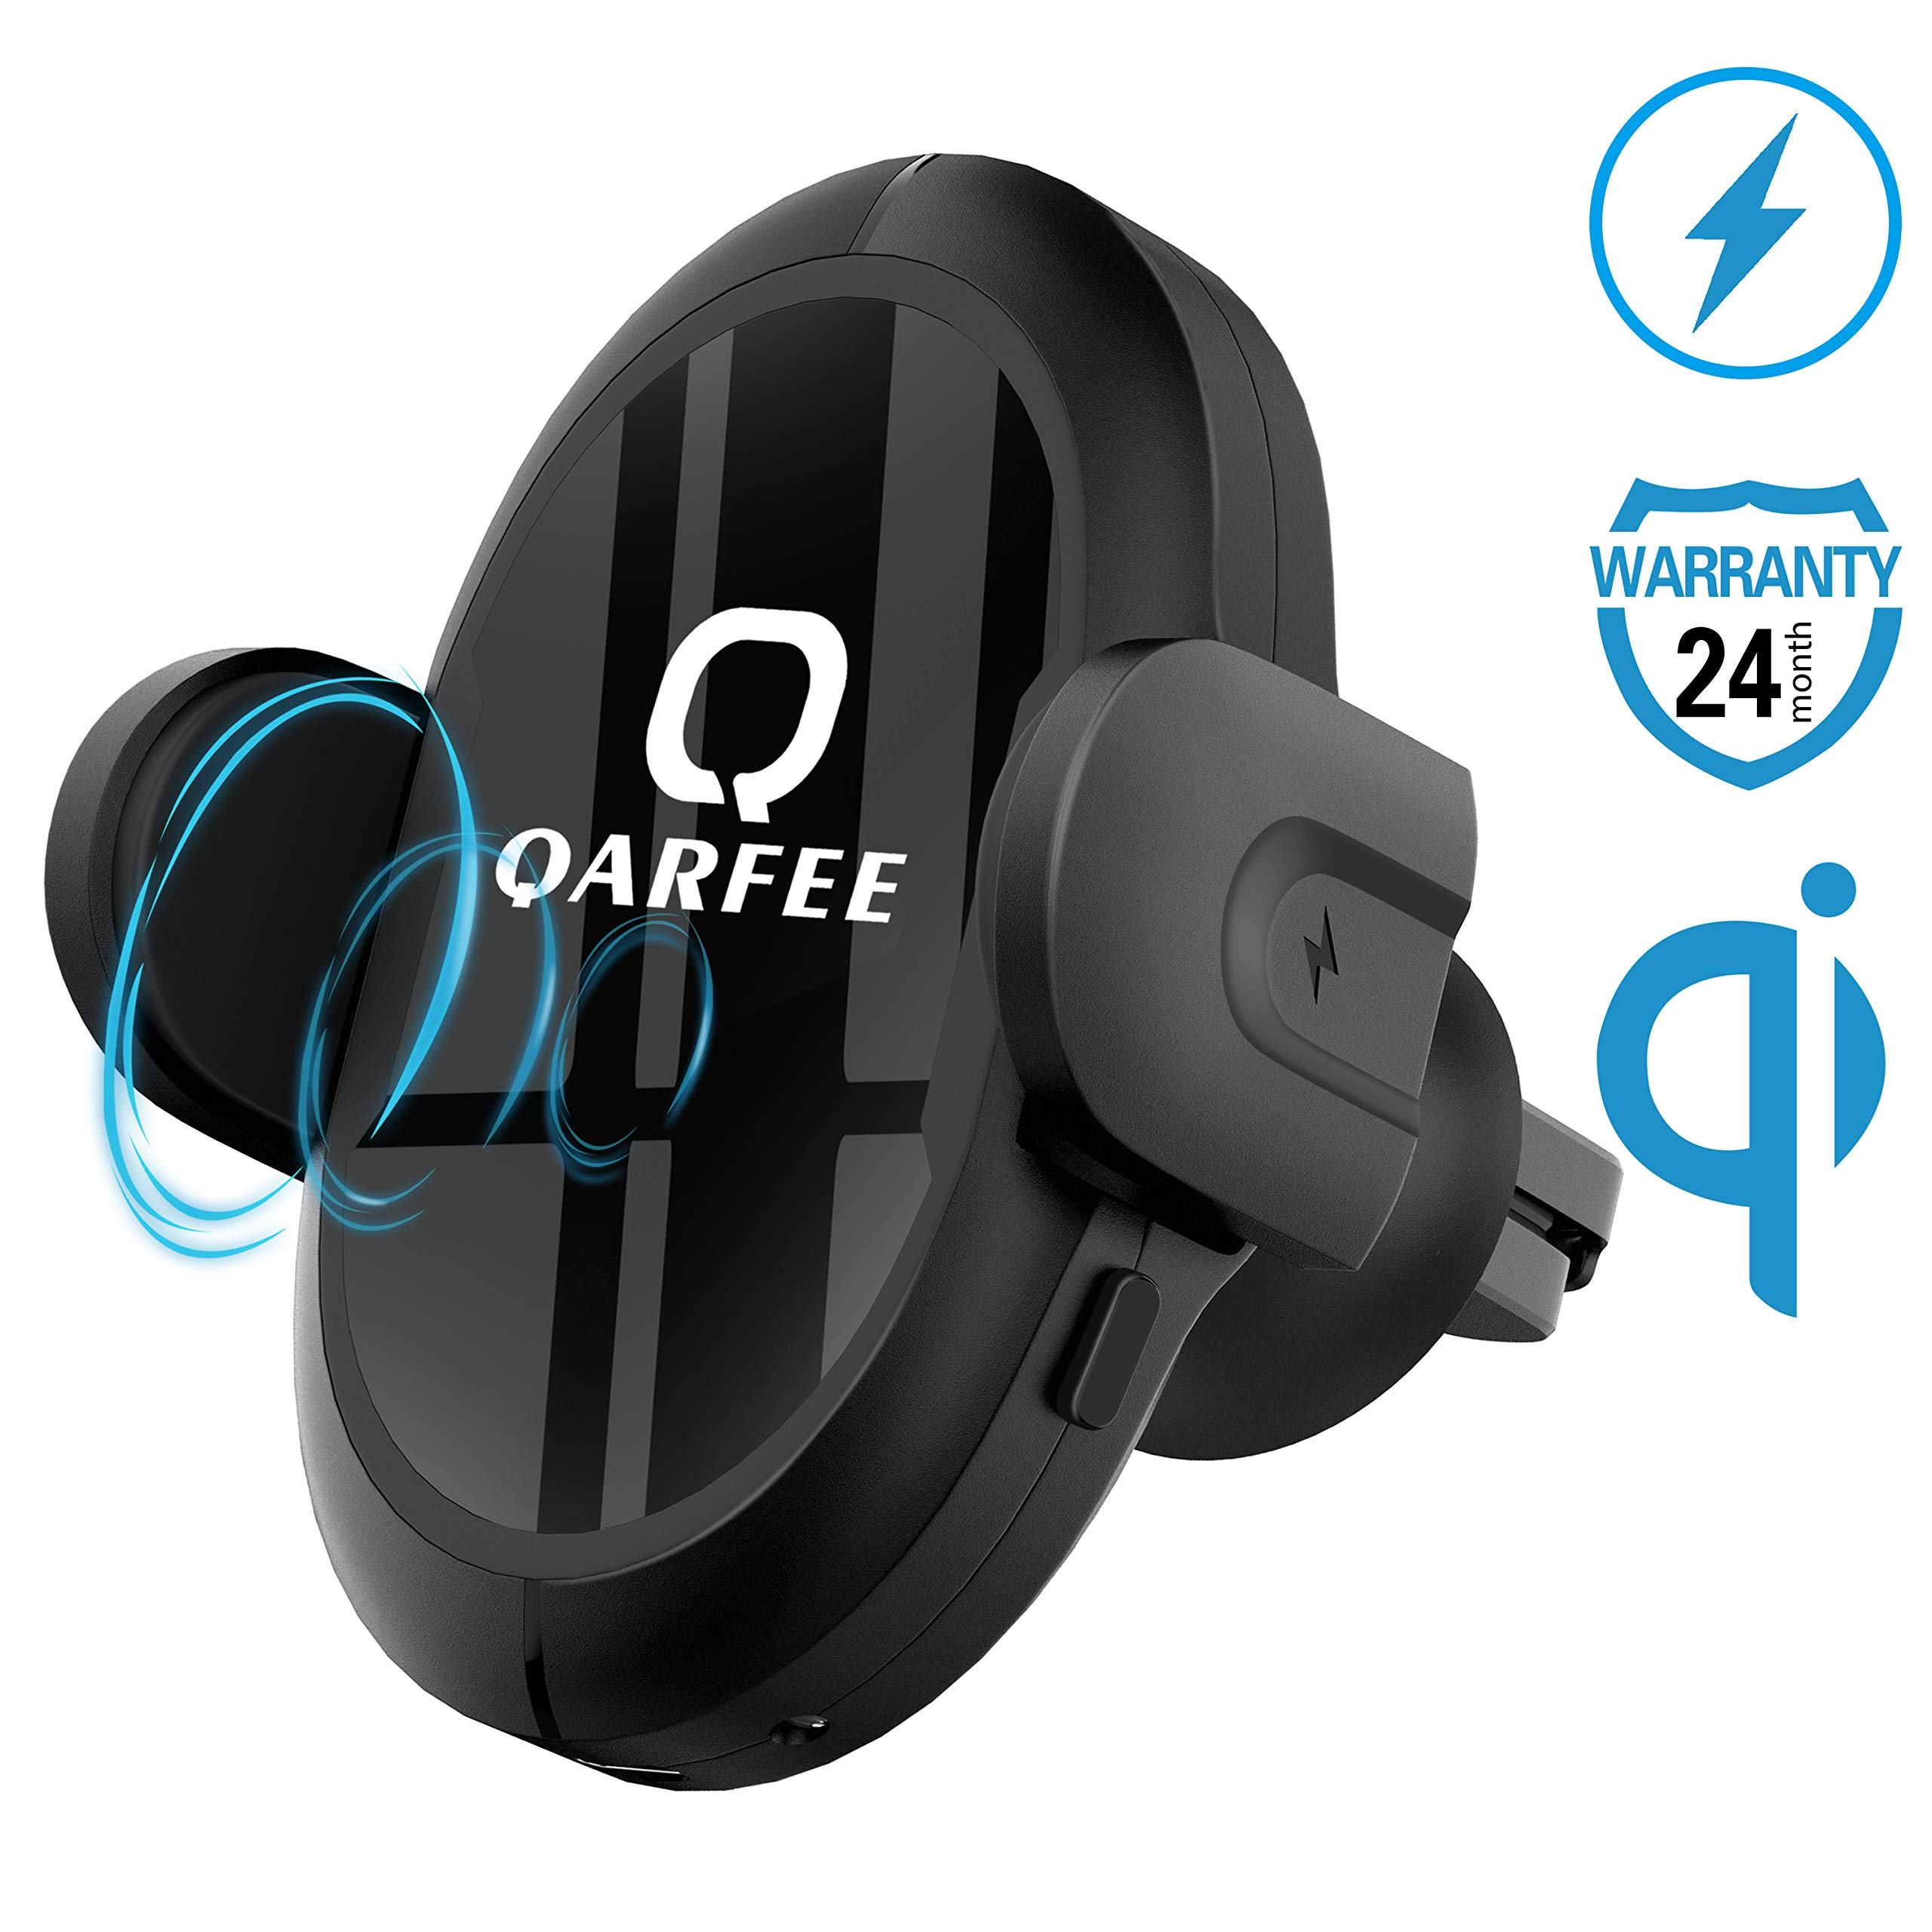 Qarfee Wireless Car Charger Multi-Funtion Phone Holder Car Mount 7.5W / 10W Fast Charging Easy One Touch Cell Phone Air Vent Charger Holder for iPhone Samsung Moto and Android Smartphones